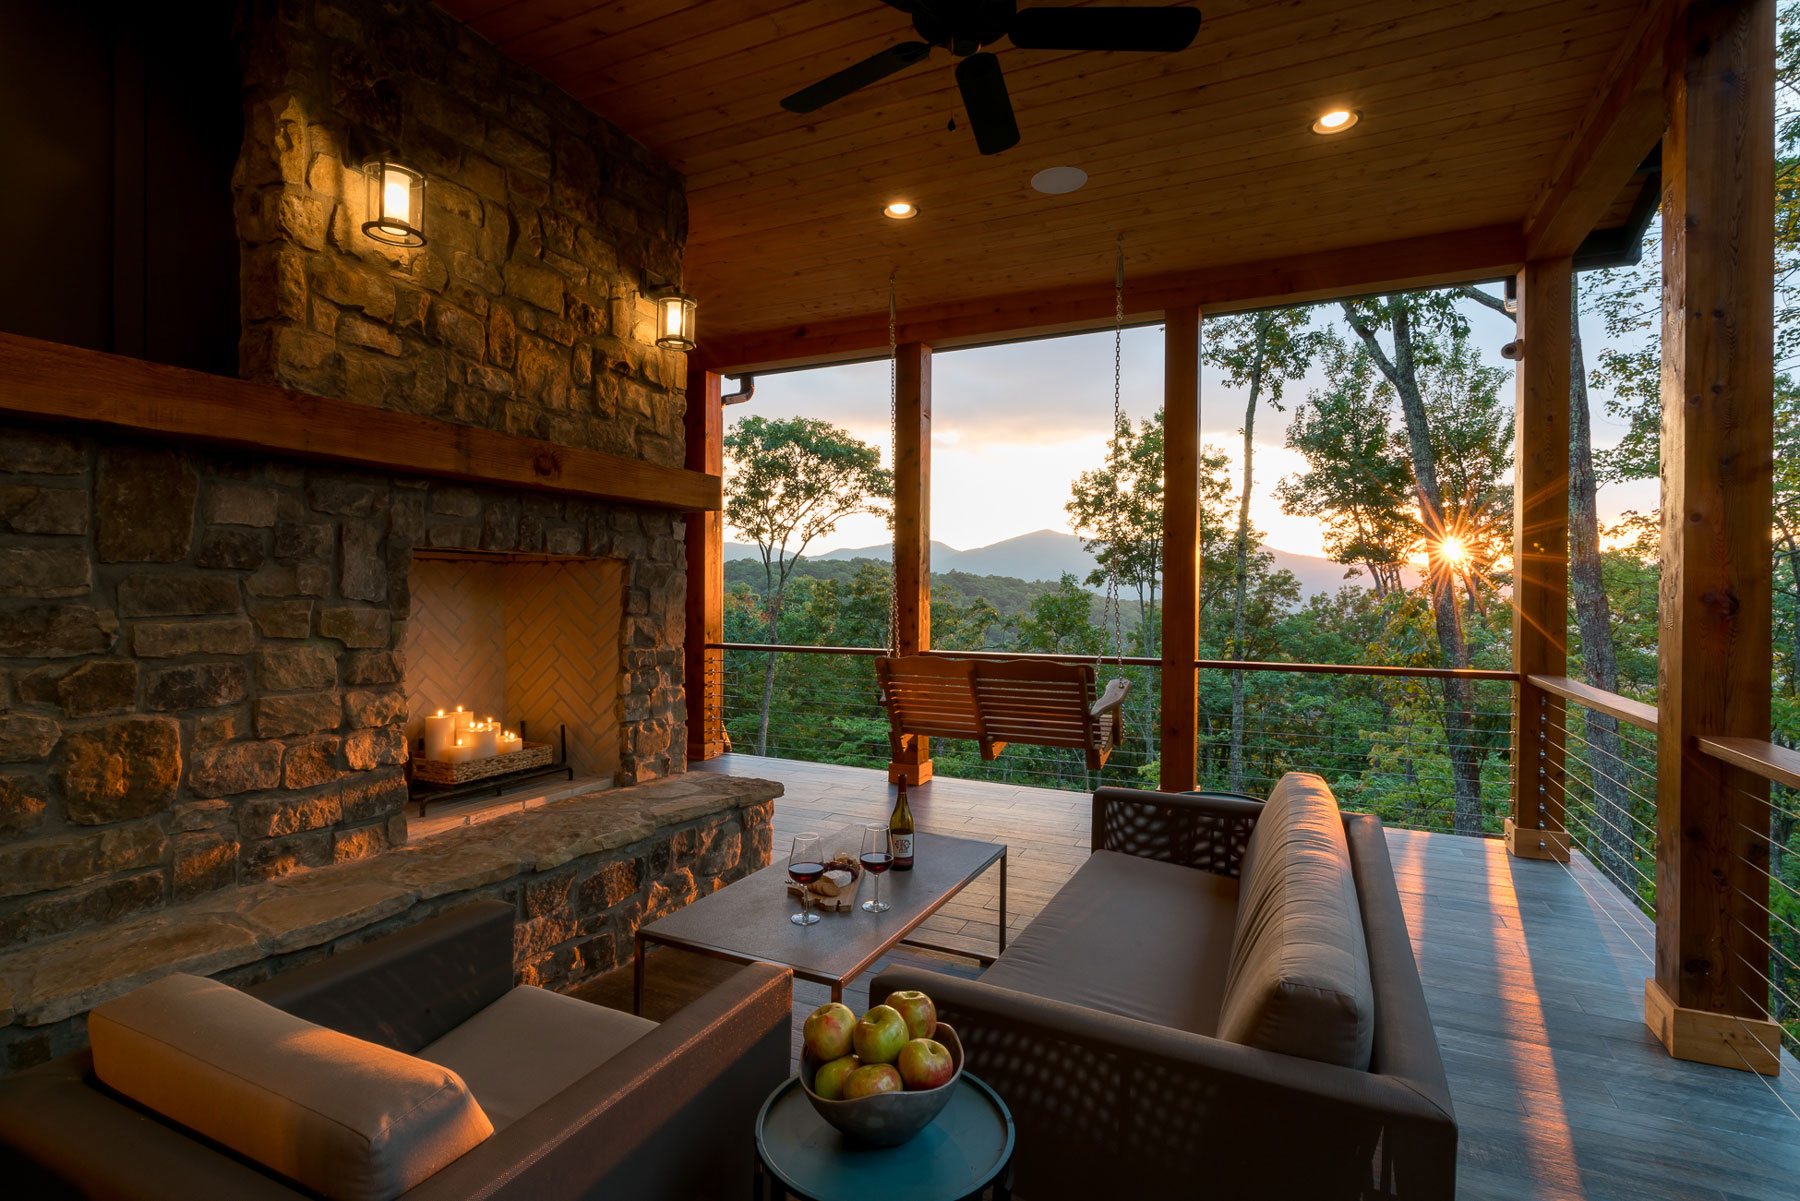 Deck with swing and fireplace with seating area above 4000 feet sea level